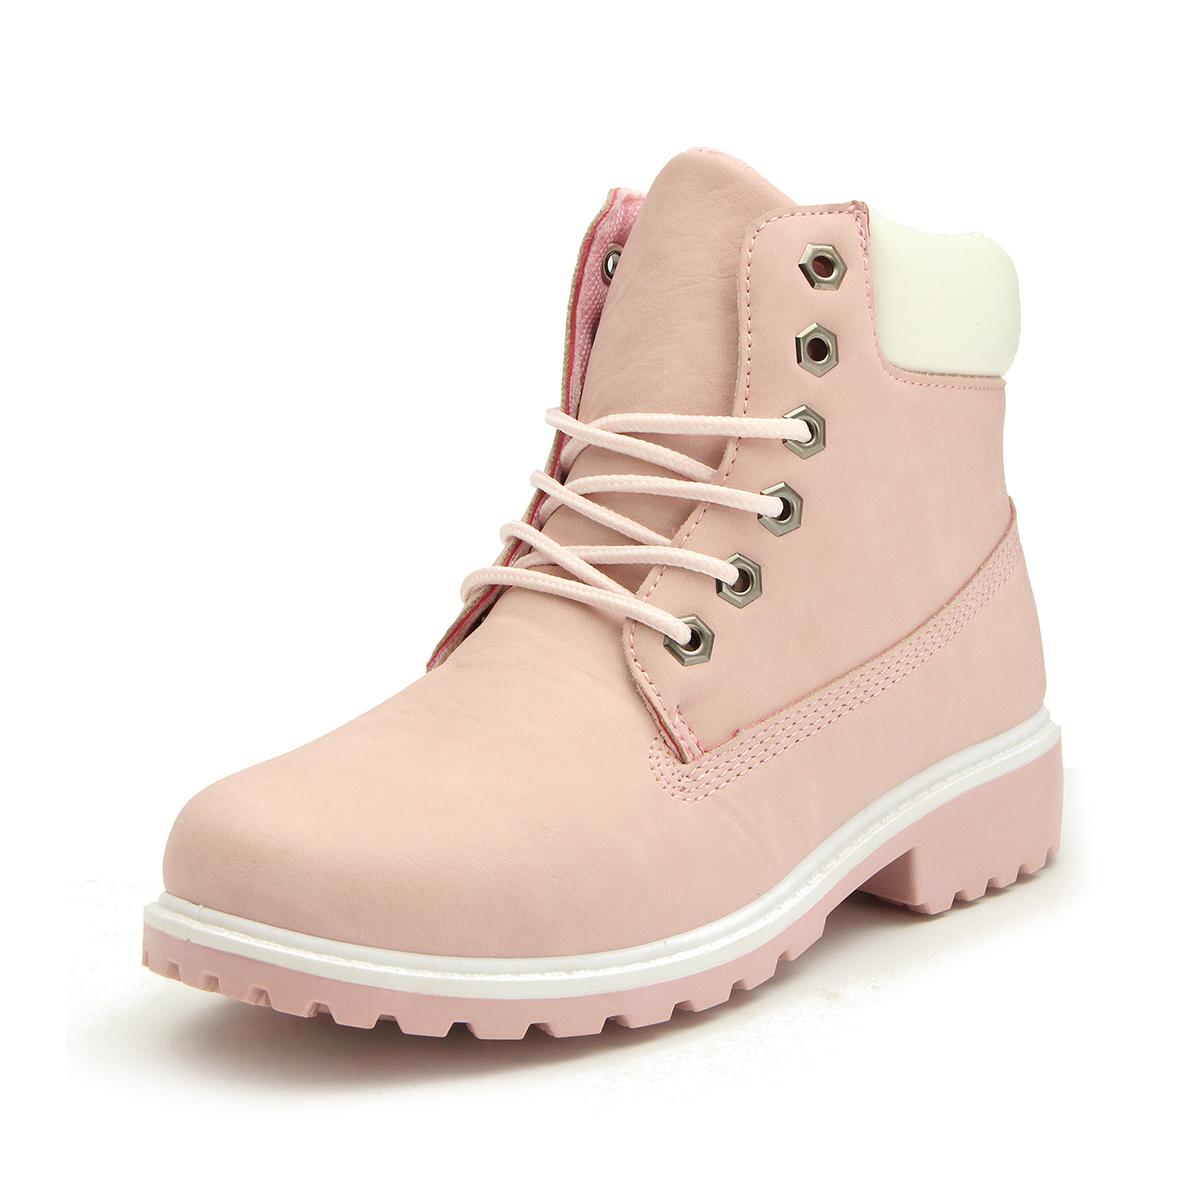 f47ac2ae23f Details about New Women's Work Boots Winter Leather Boot Lace up Outdoor  Waterproof Snow Boot